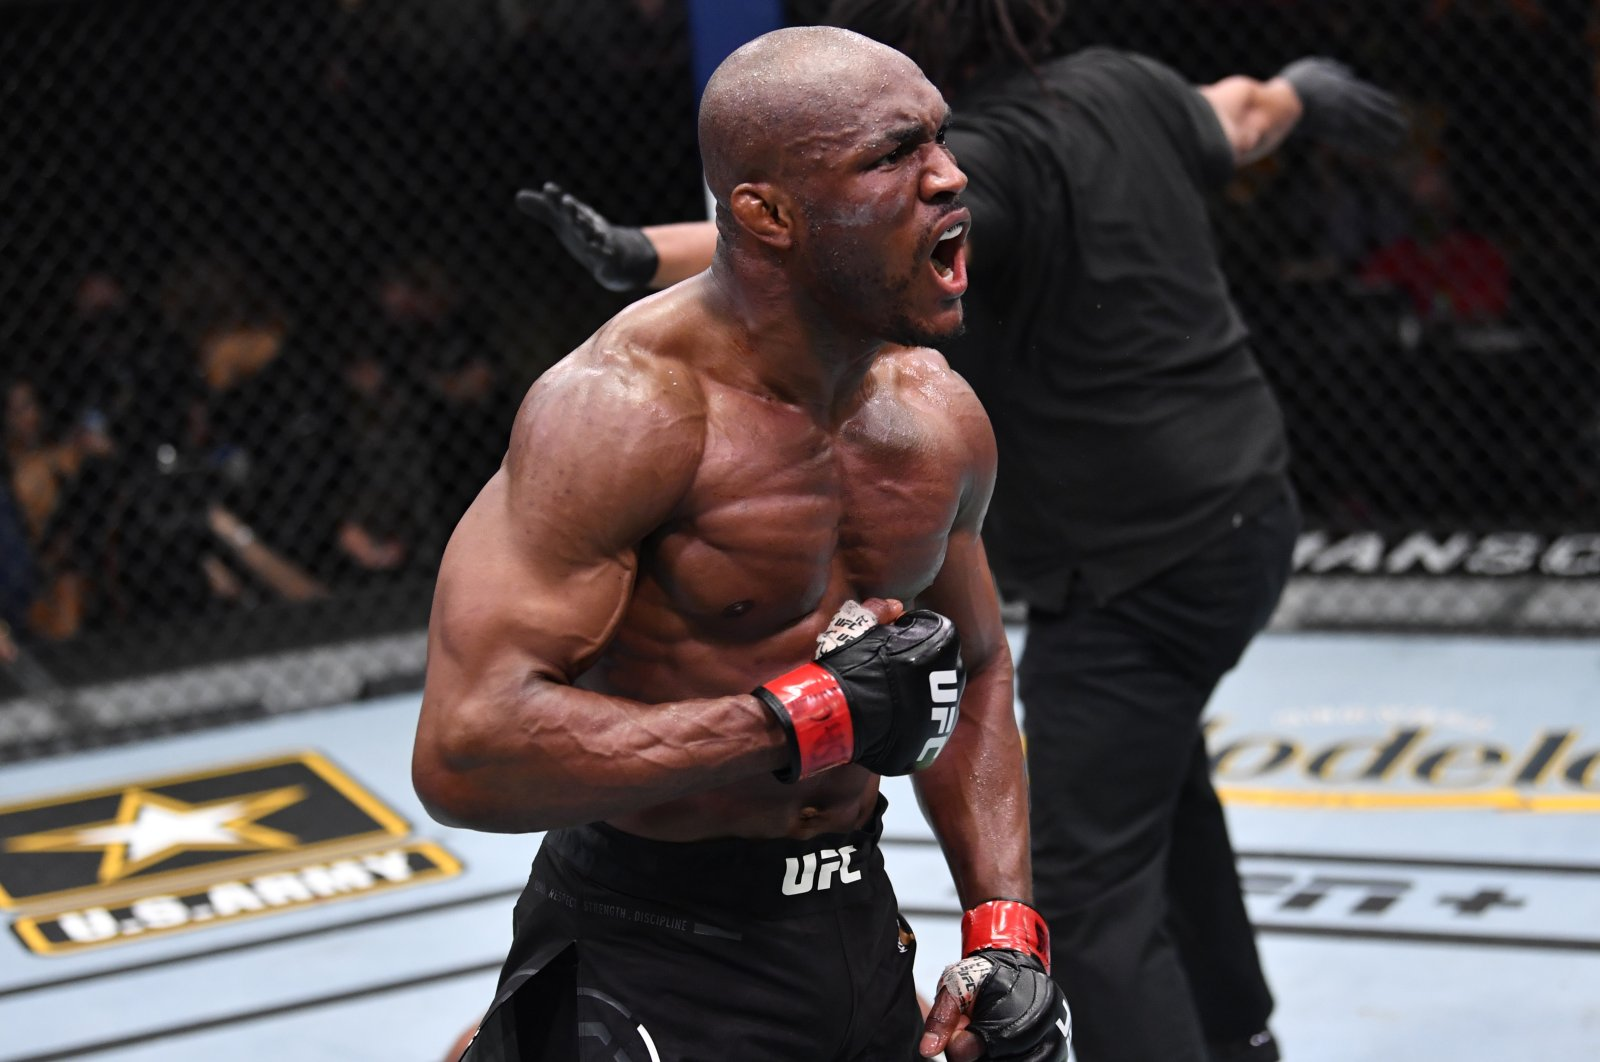 Nigeria's Kamaru Usman reacts after his victory over Brazil's Gilbert Burns in the UFC 258 event at UFC APEX, in Las Vegas, Nevada, U.S., Feb. 13, 2021. (Getty Images)